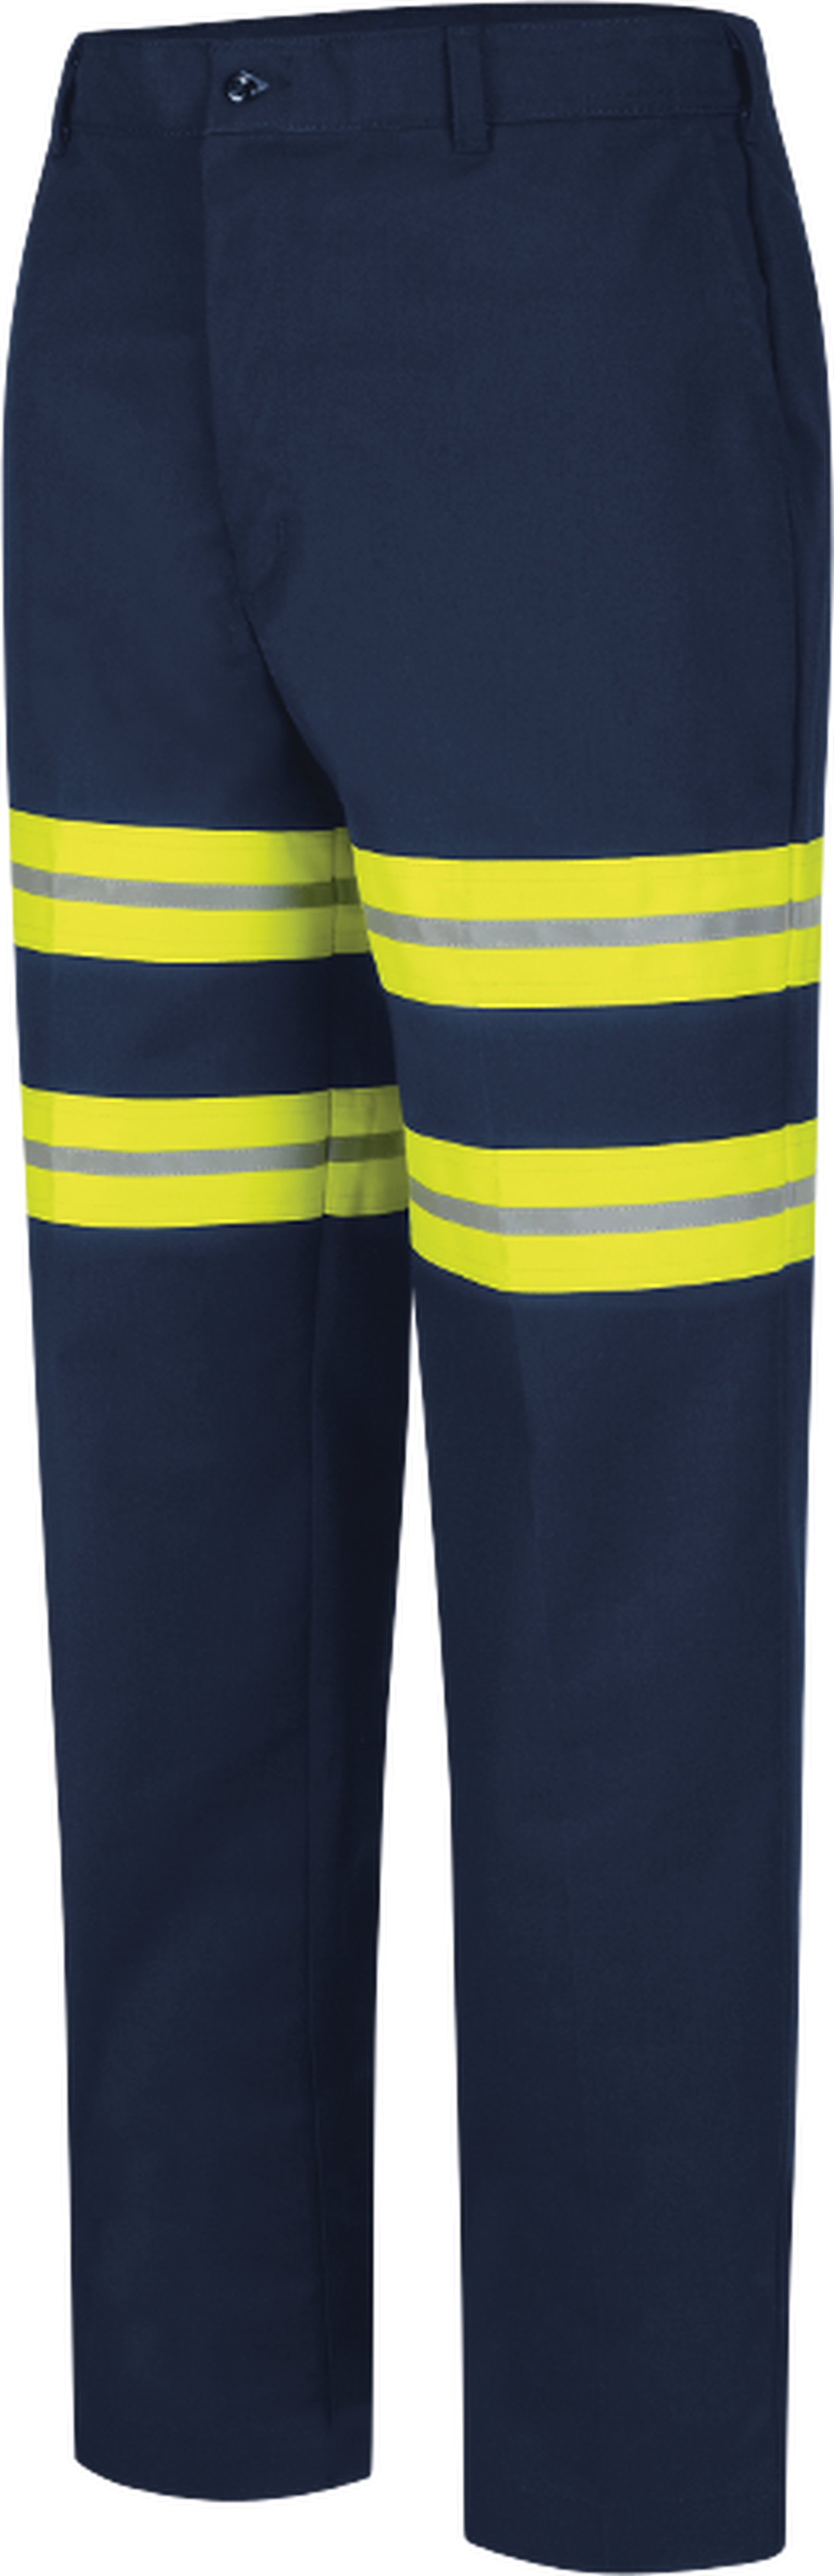 Men's Enhanced Visibility Dura-Kap® Industrial Pant